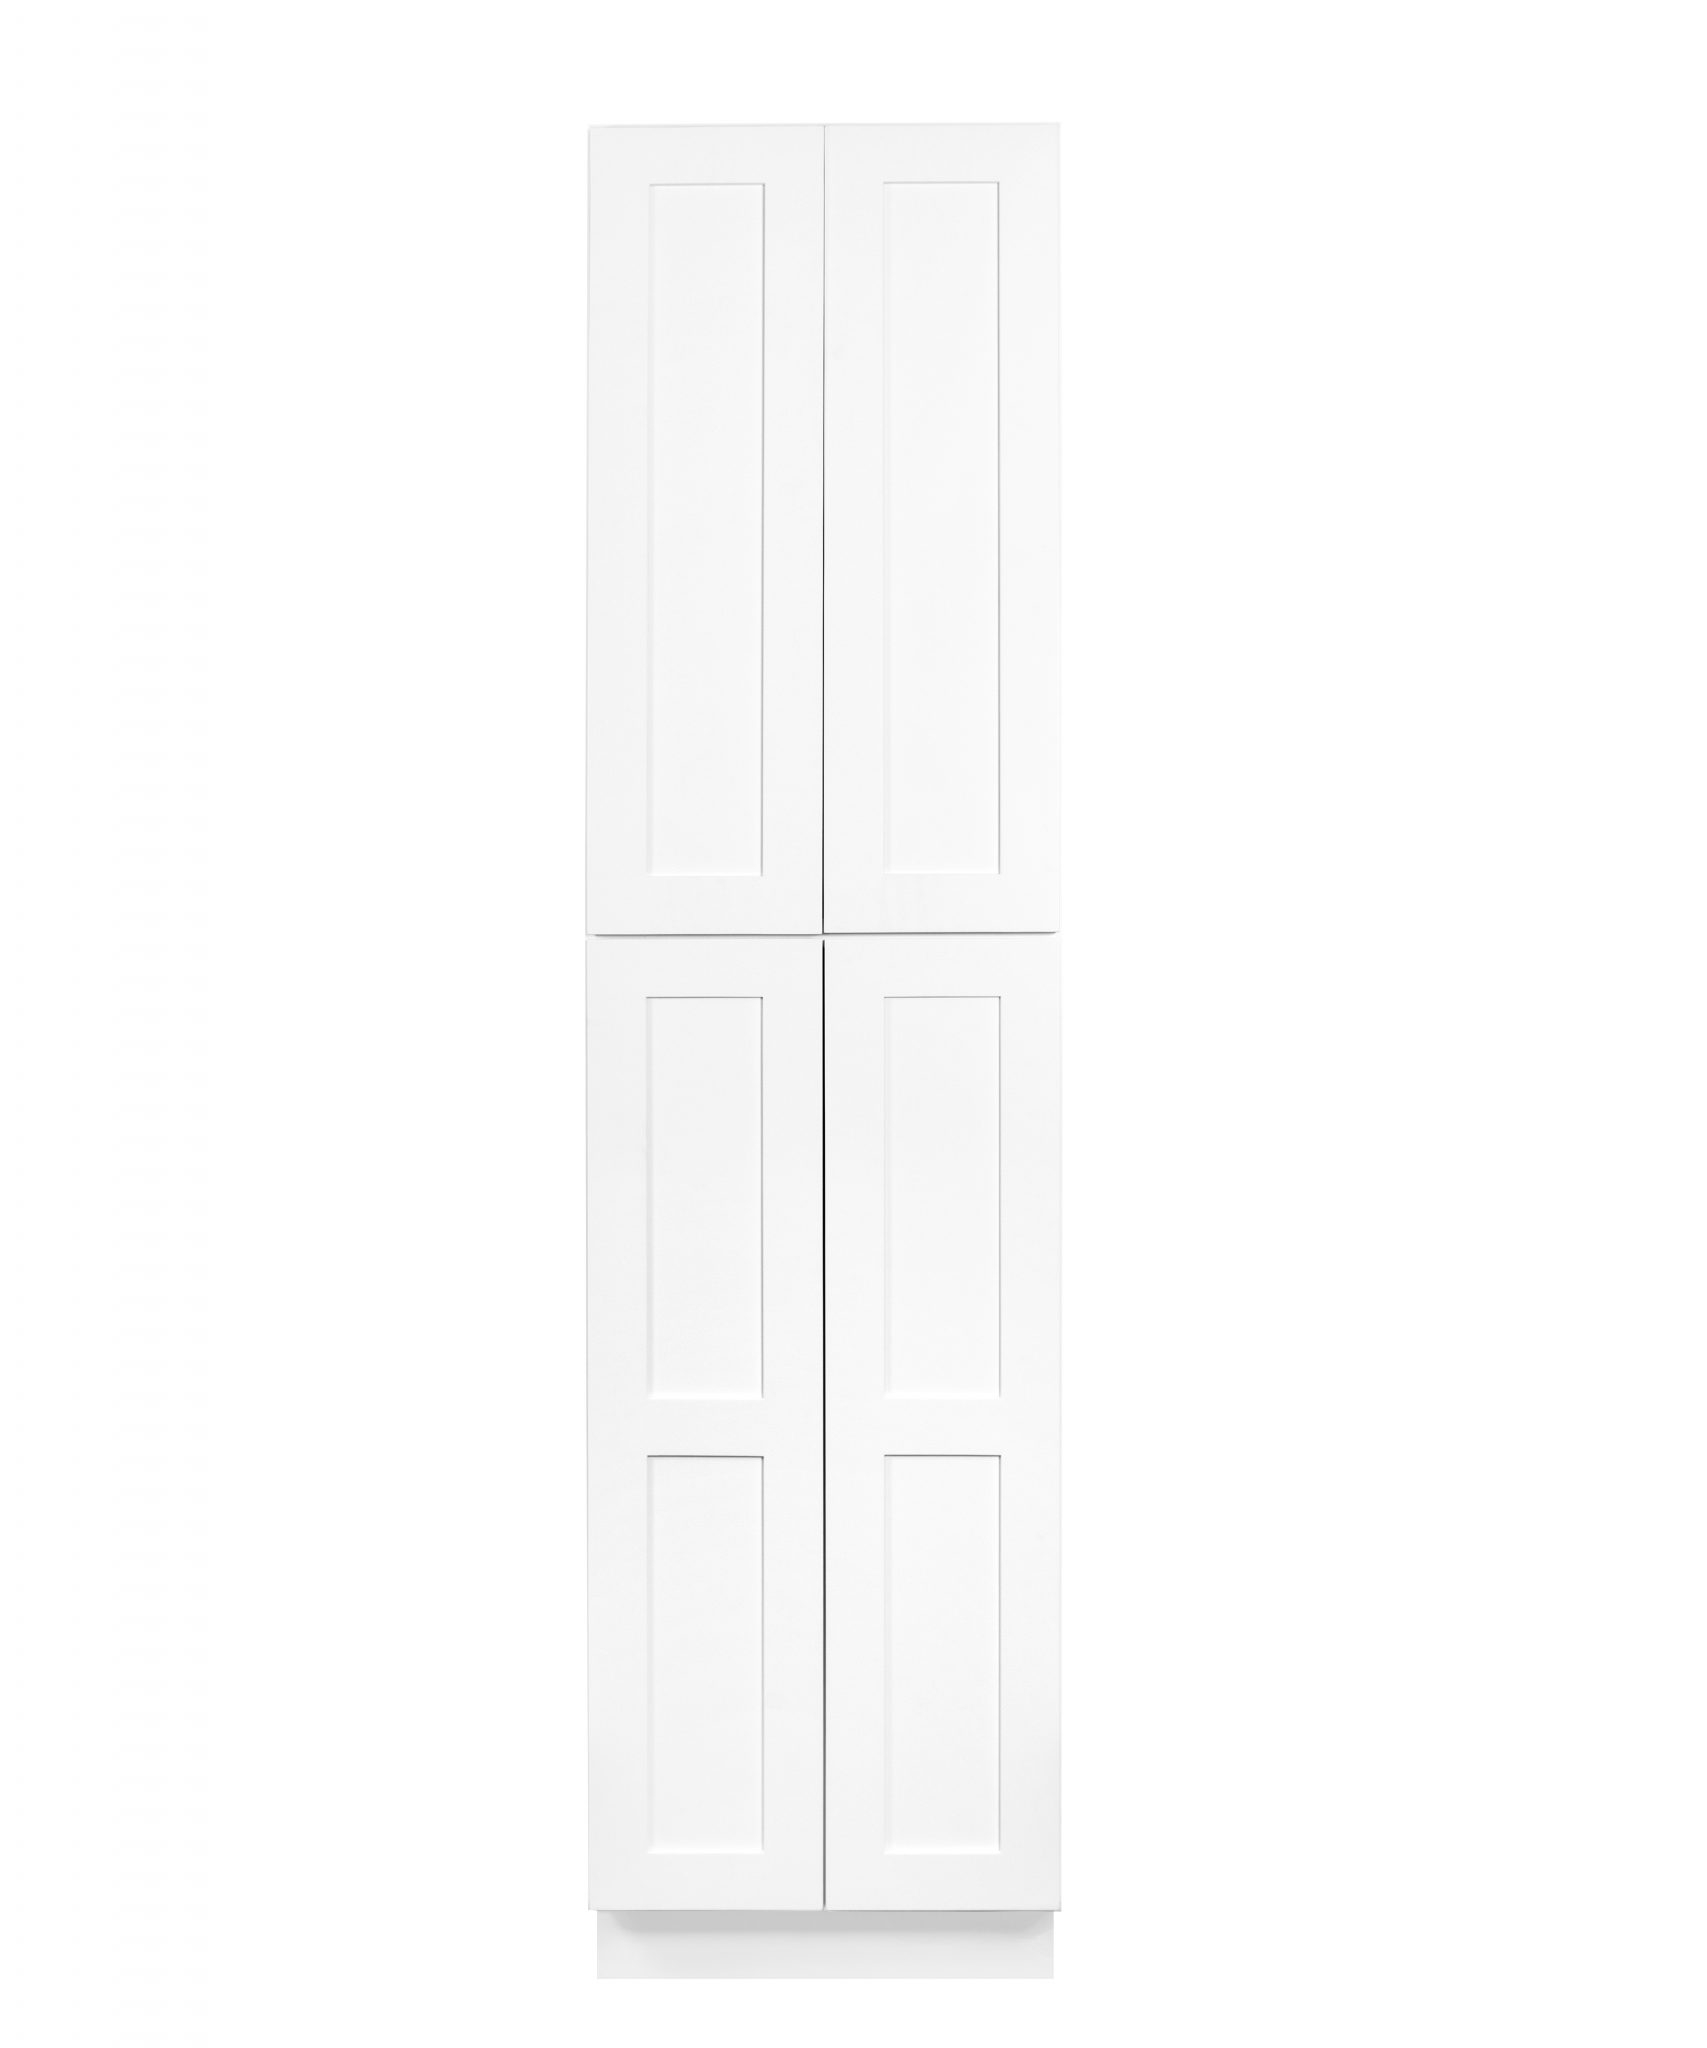 White Shaker Cabinetry P24 / P30